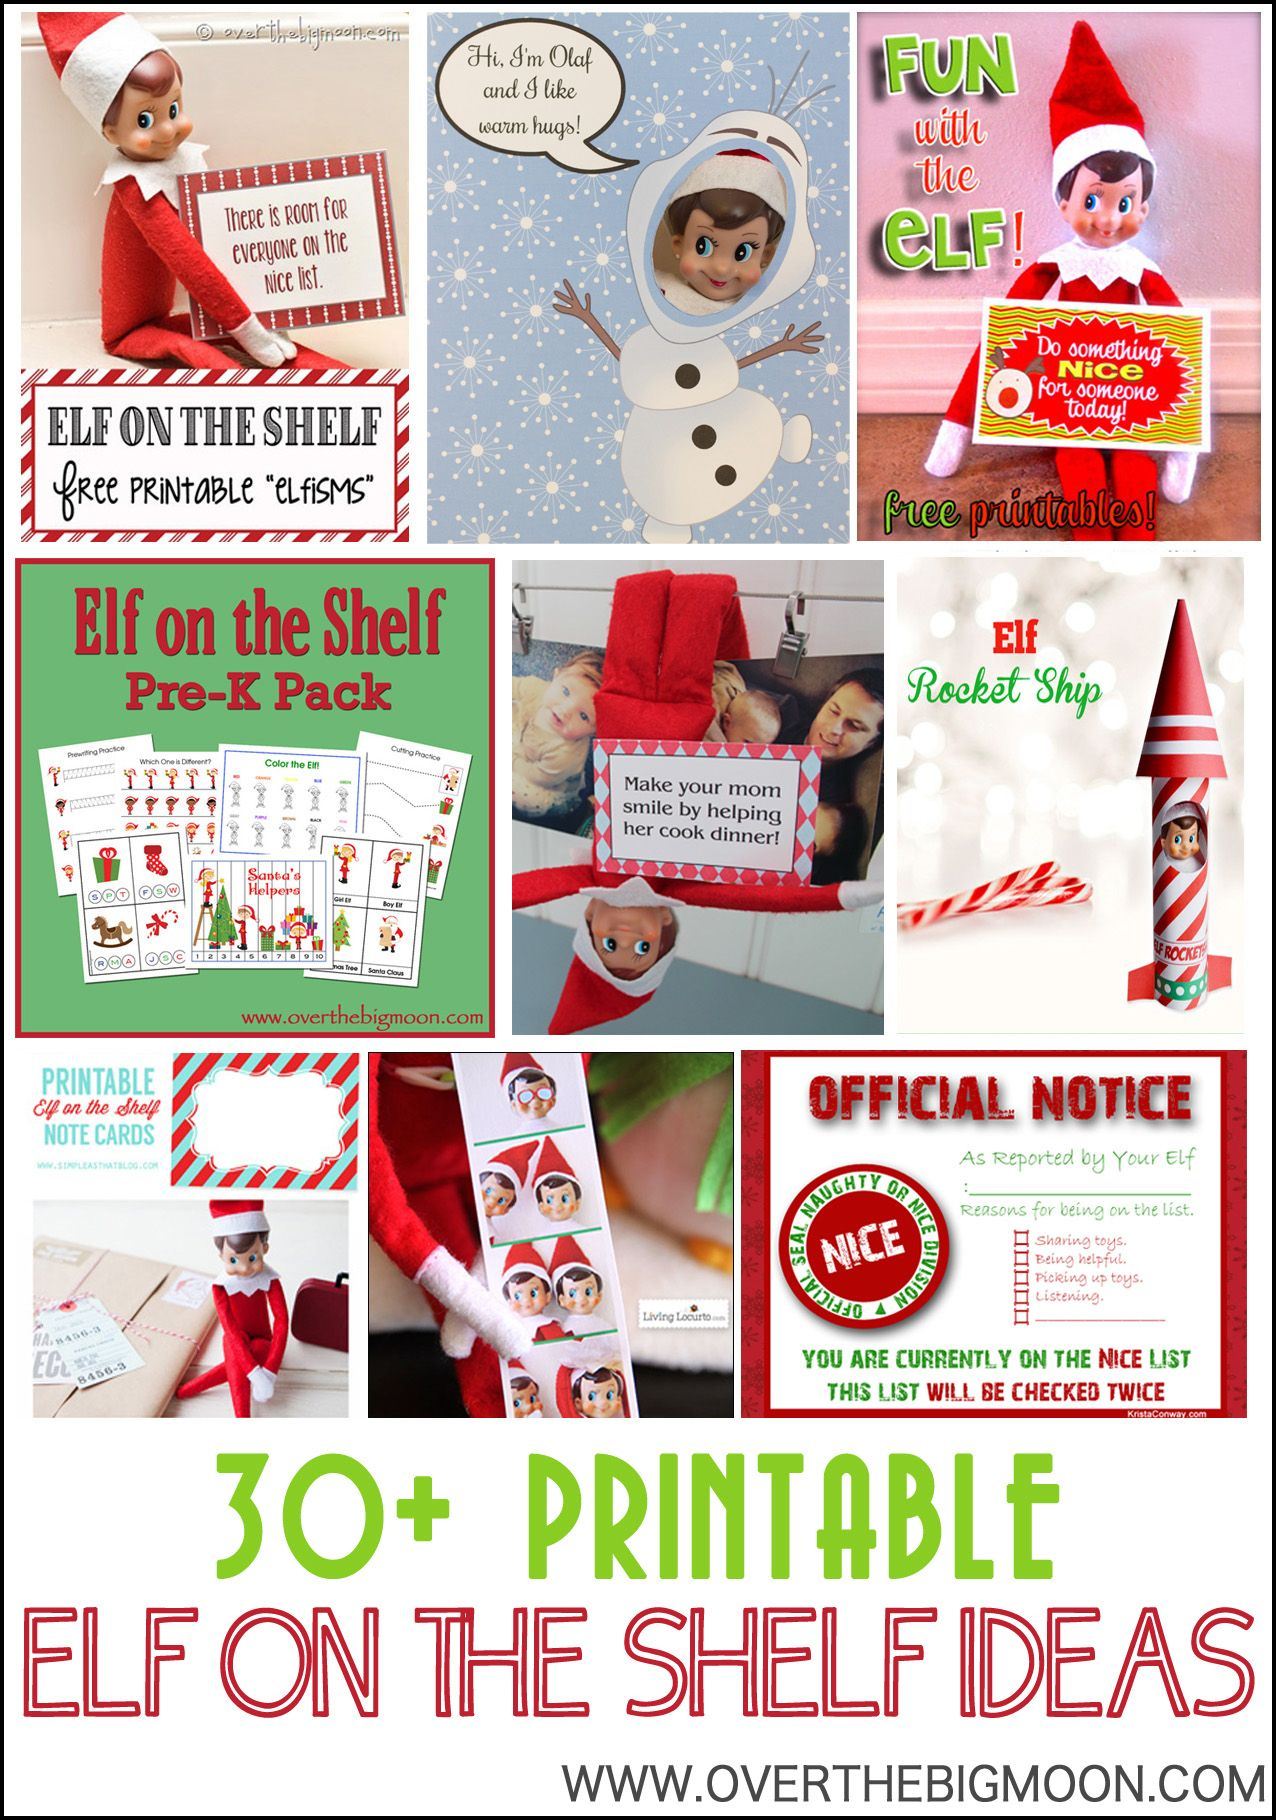 30+ Printable Elf On The Shelf Ideas | Elf On The Shelf Ideas - Elf On The Shelf Free Printable Ideas